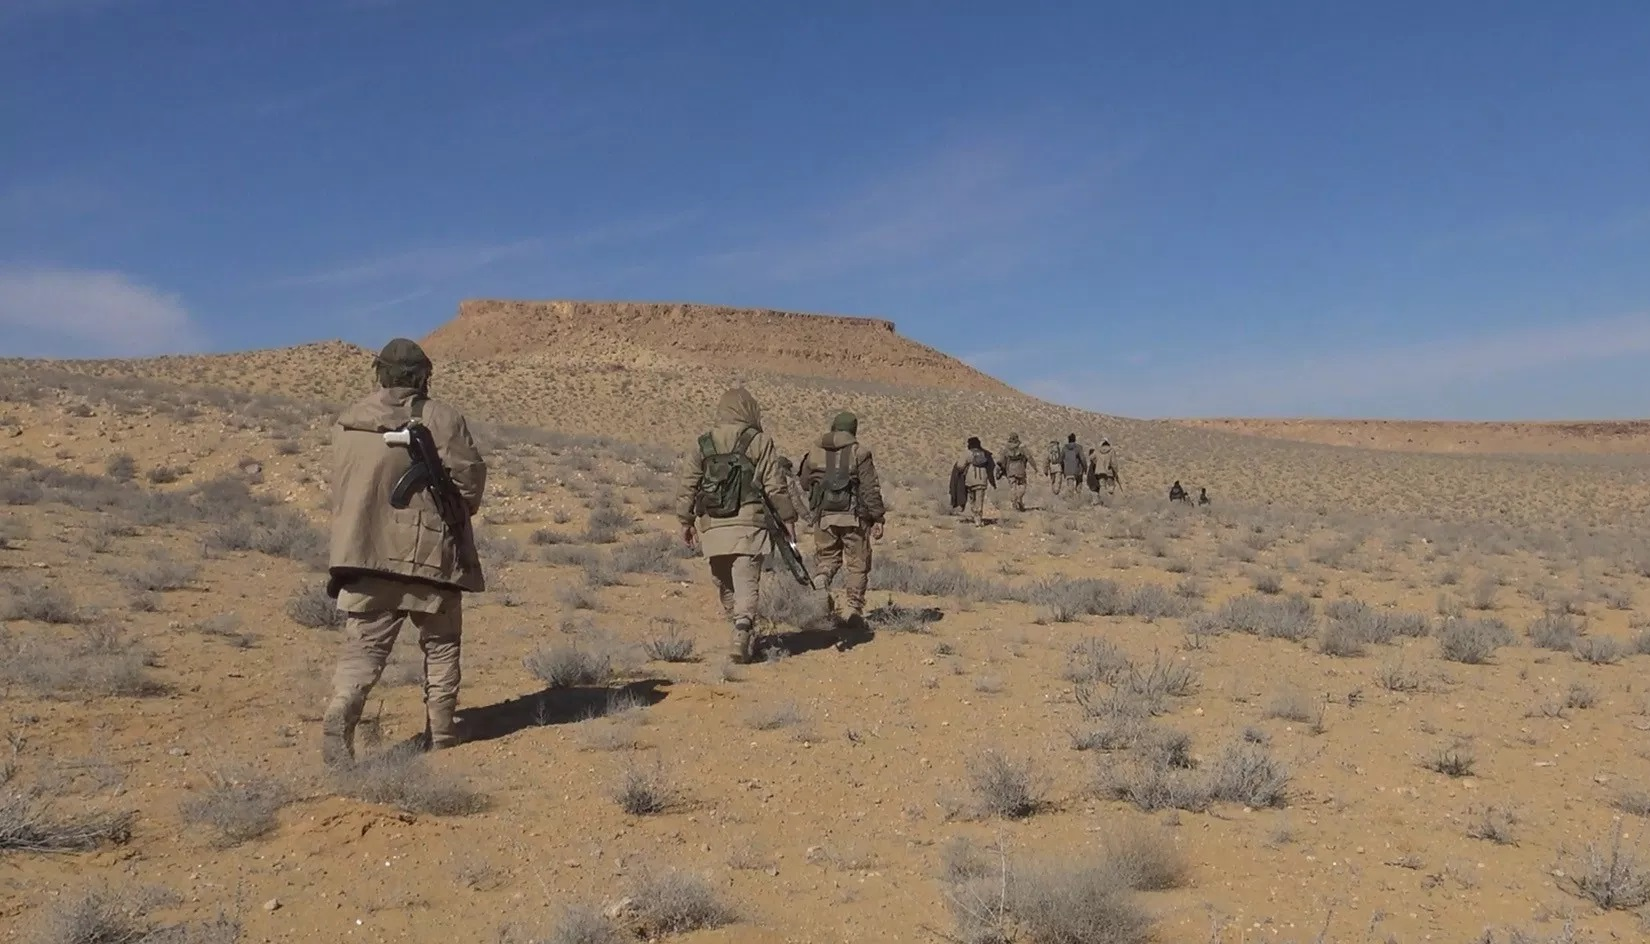 Syrian Army Loses Contact With Unit In East Homs As Battle With ISIS Heats Up